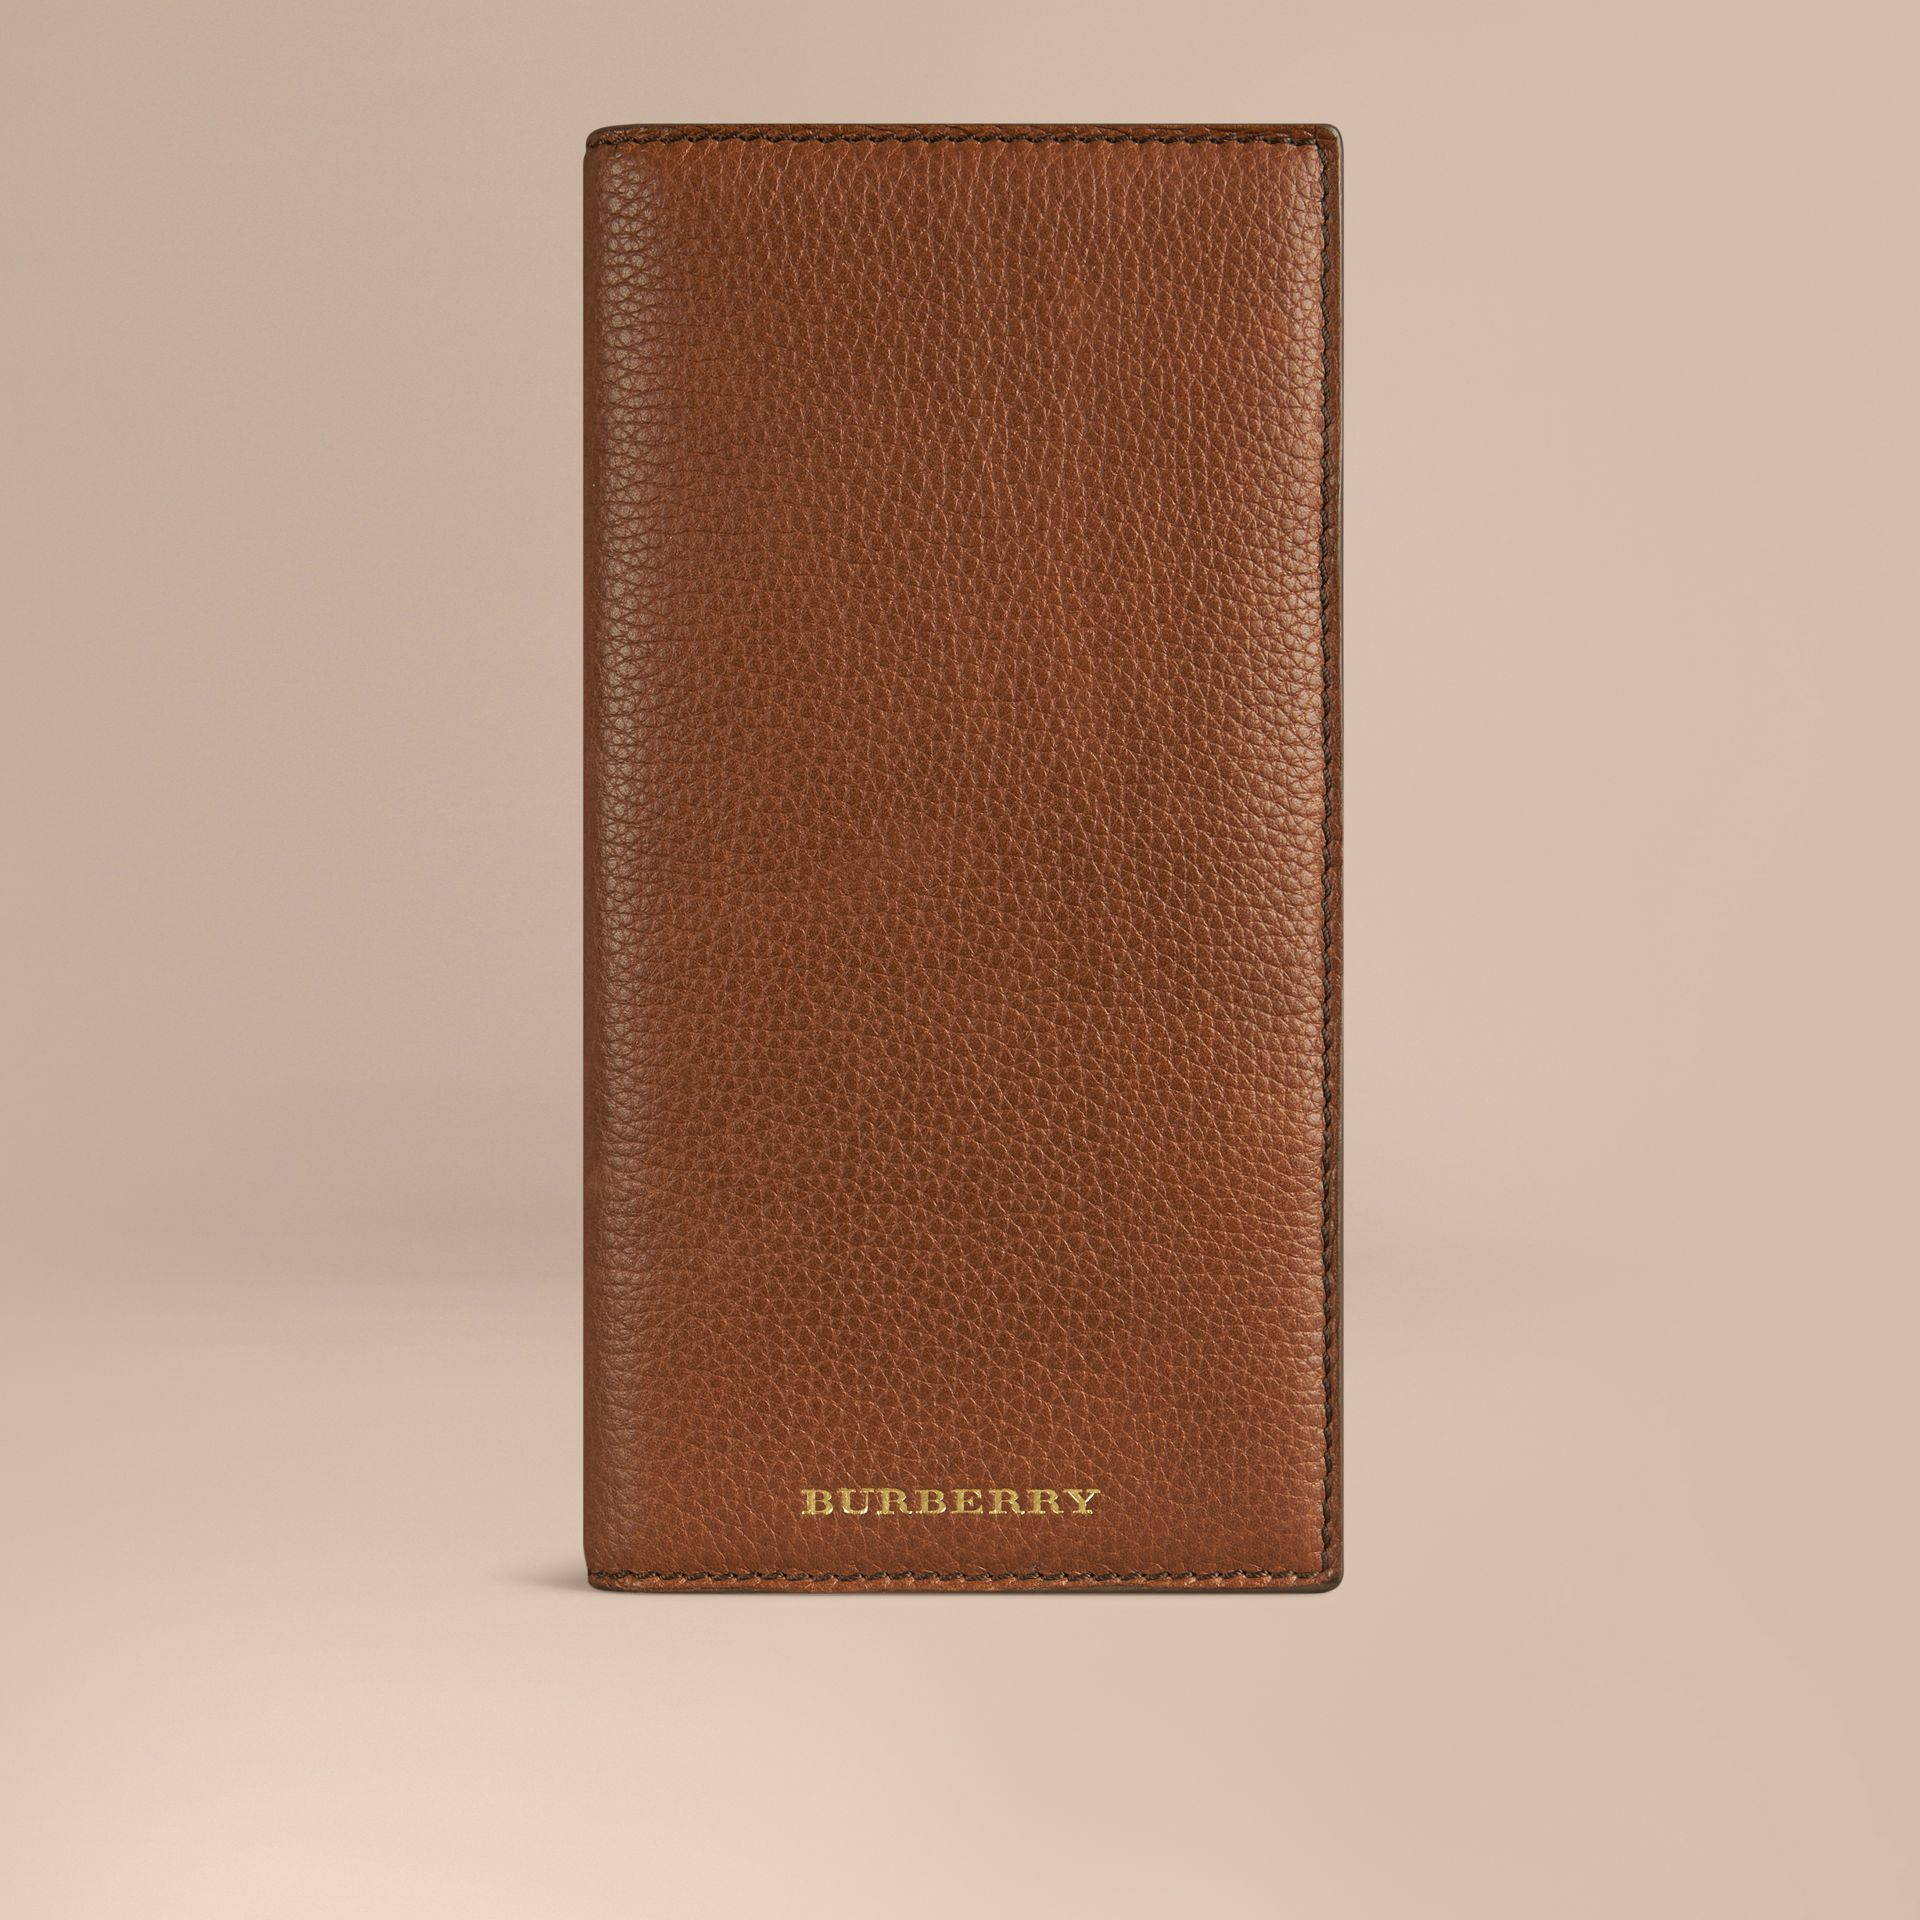 Grainy Leather Travel Card Case in Tan - Men | Burberry Singapore - gallery image 1